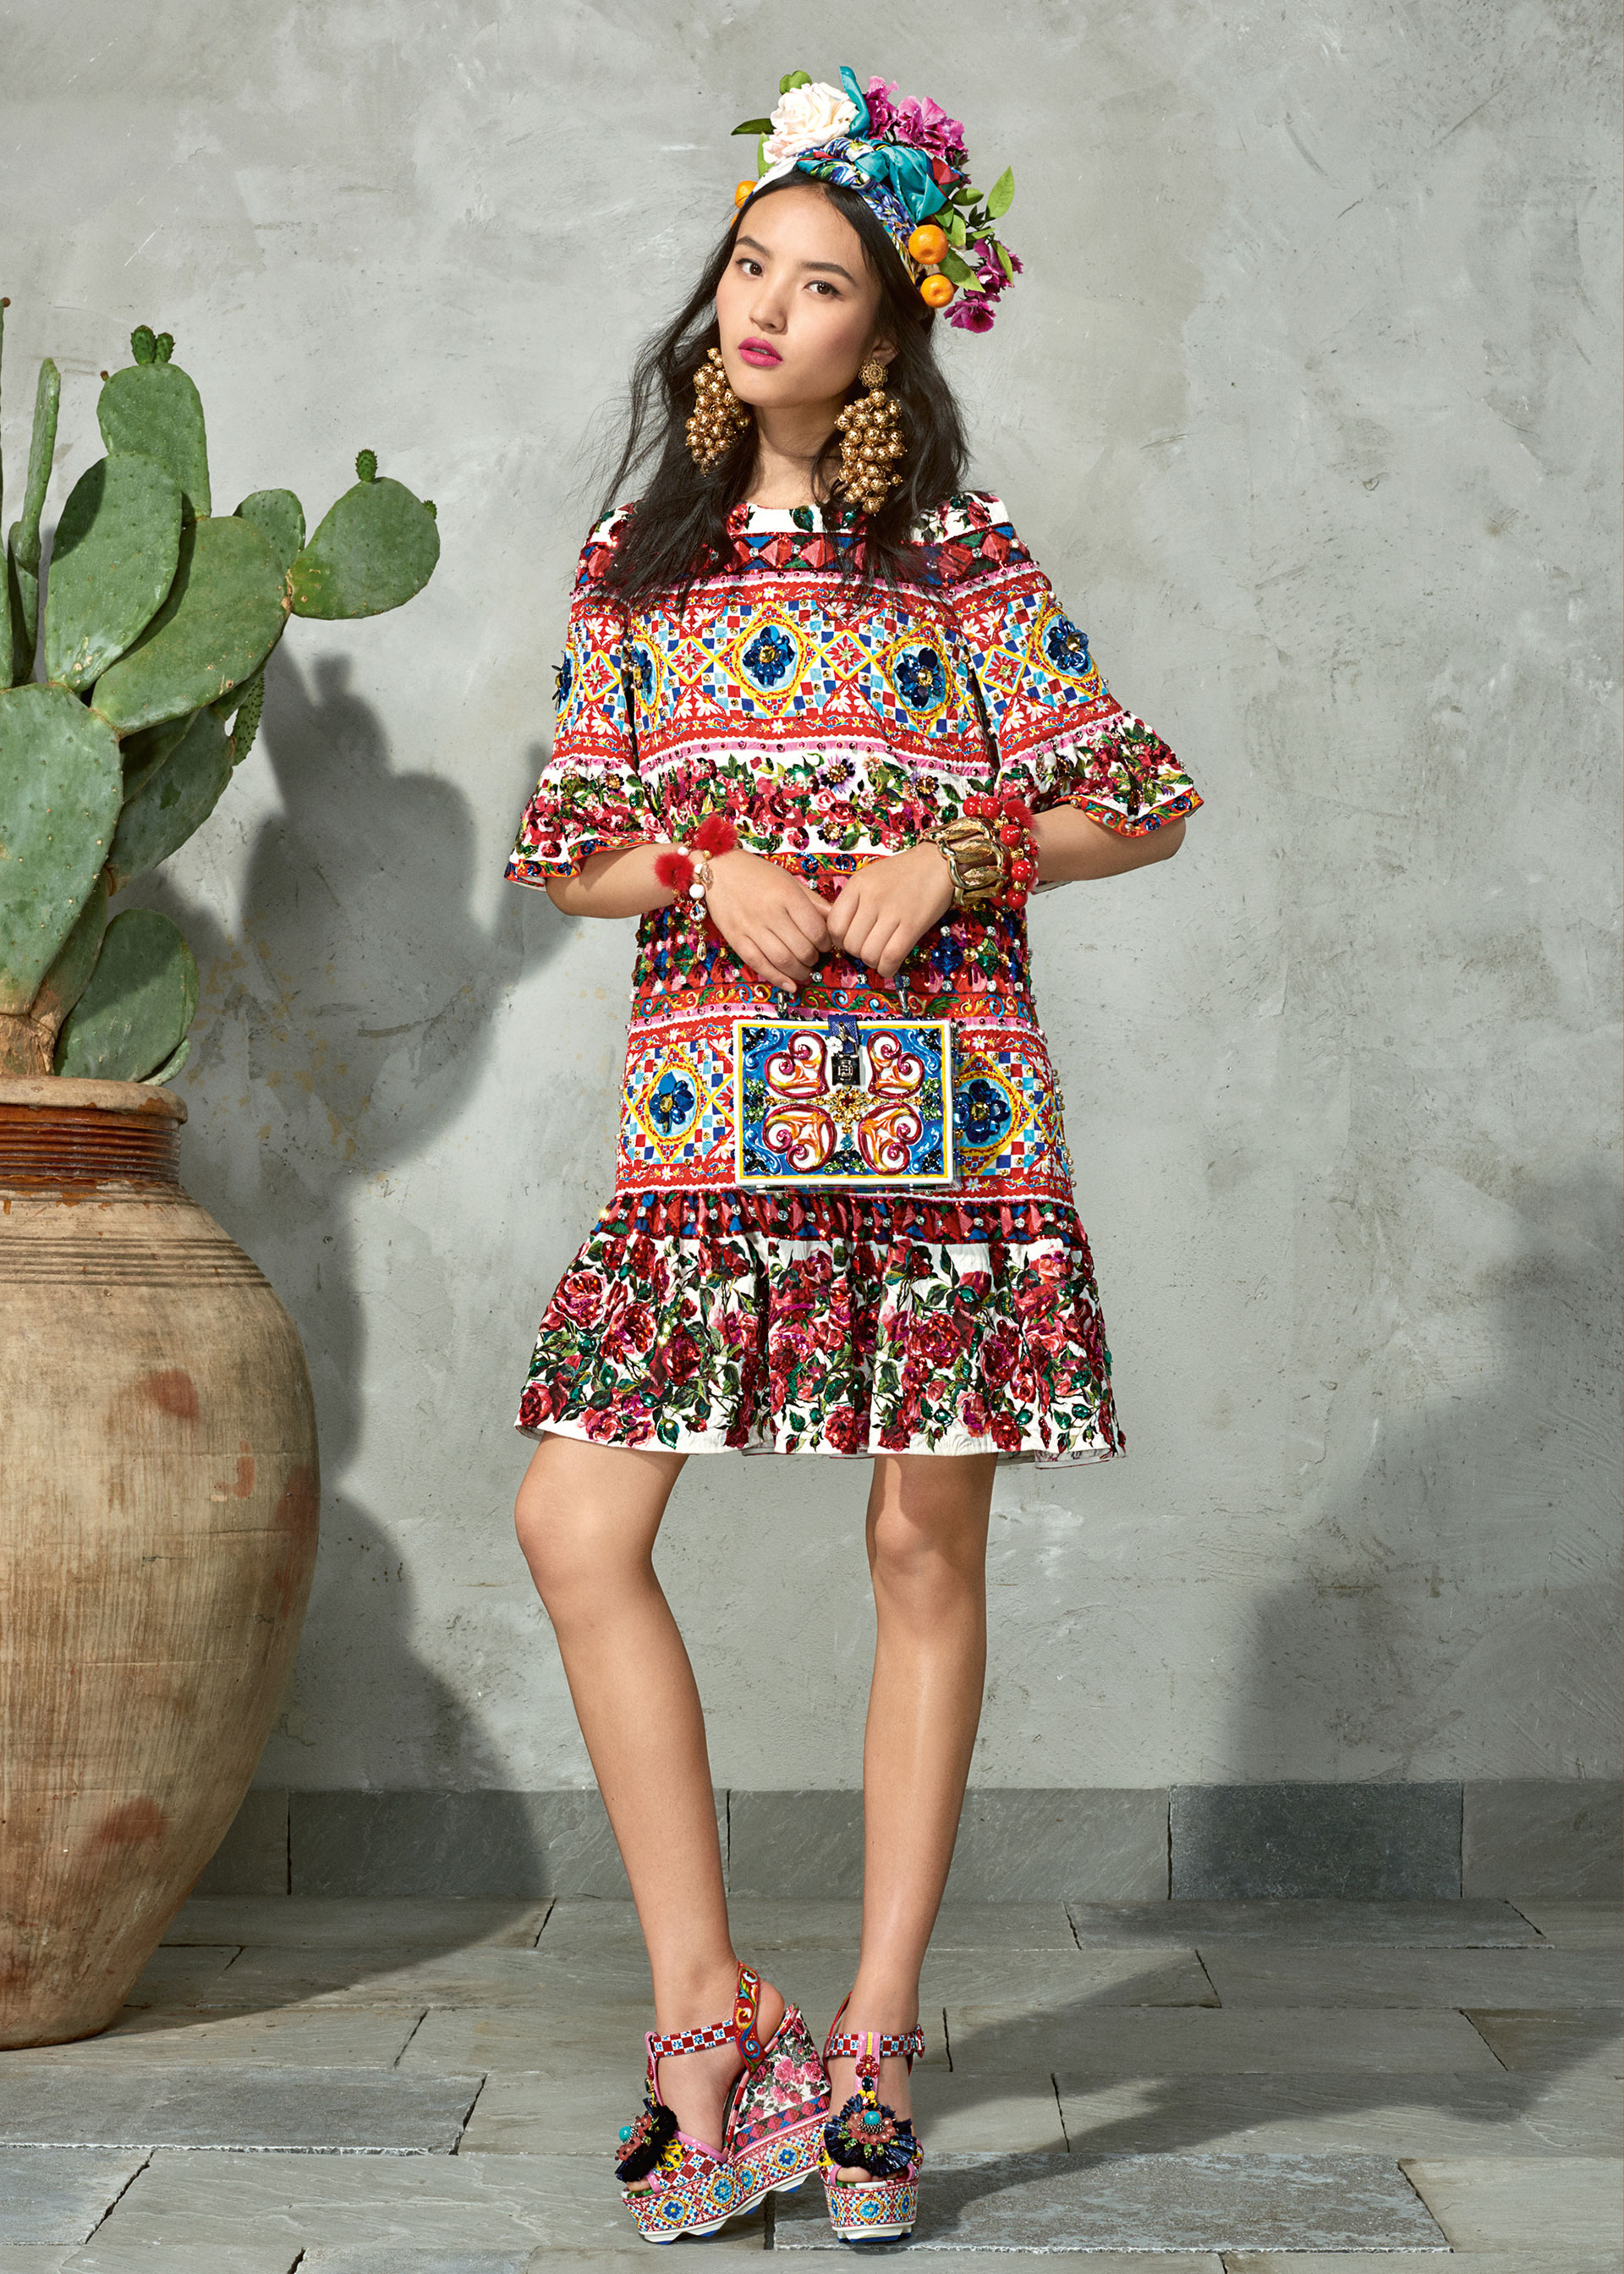 dolce and gabbana summer 2017 woman collection 110 - Dolce & Gabbana/Spring Summer 2017 Collection/ Mambo